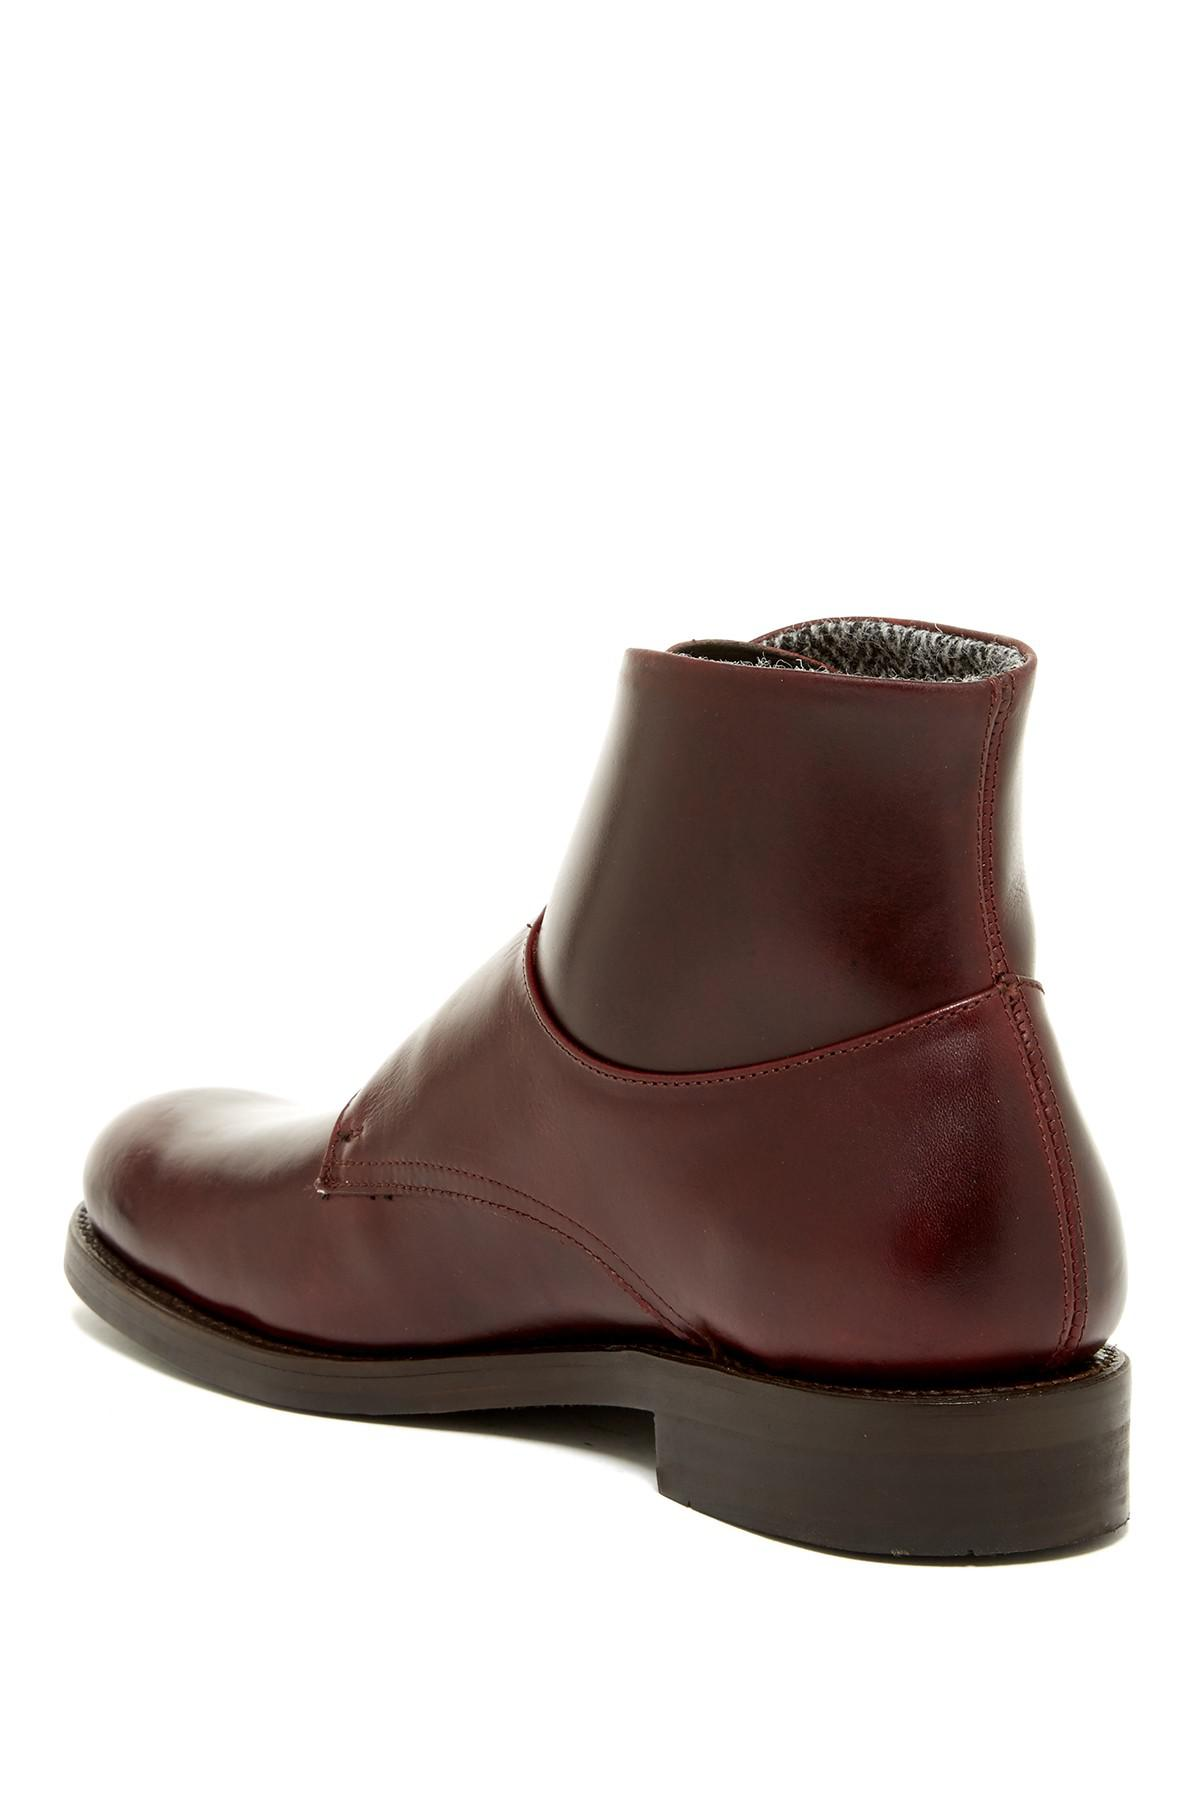 9bef08ac625 Wolverine Brown 1000 Mile Myles Double Monk Strap Boot for men